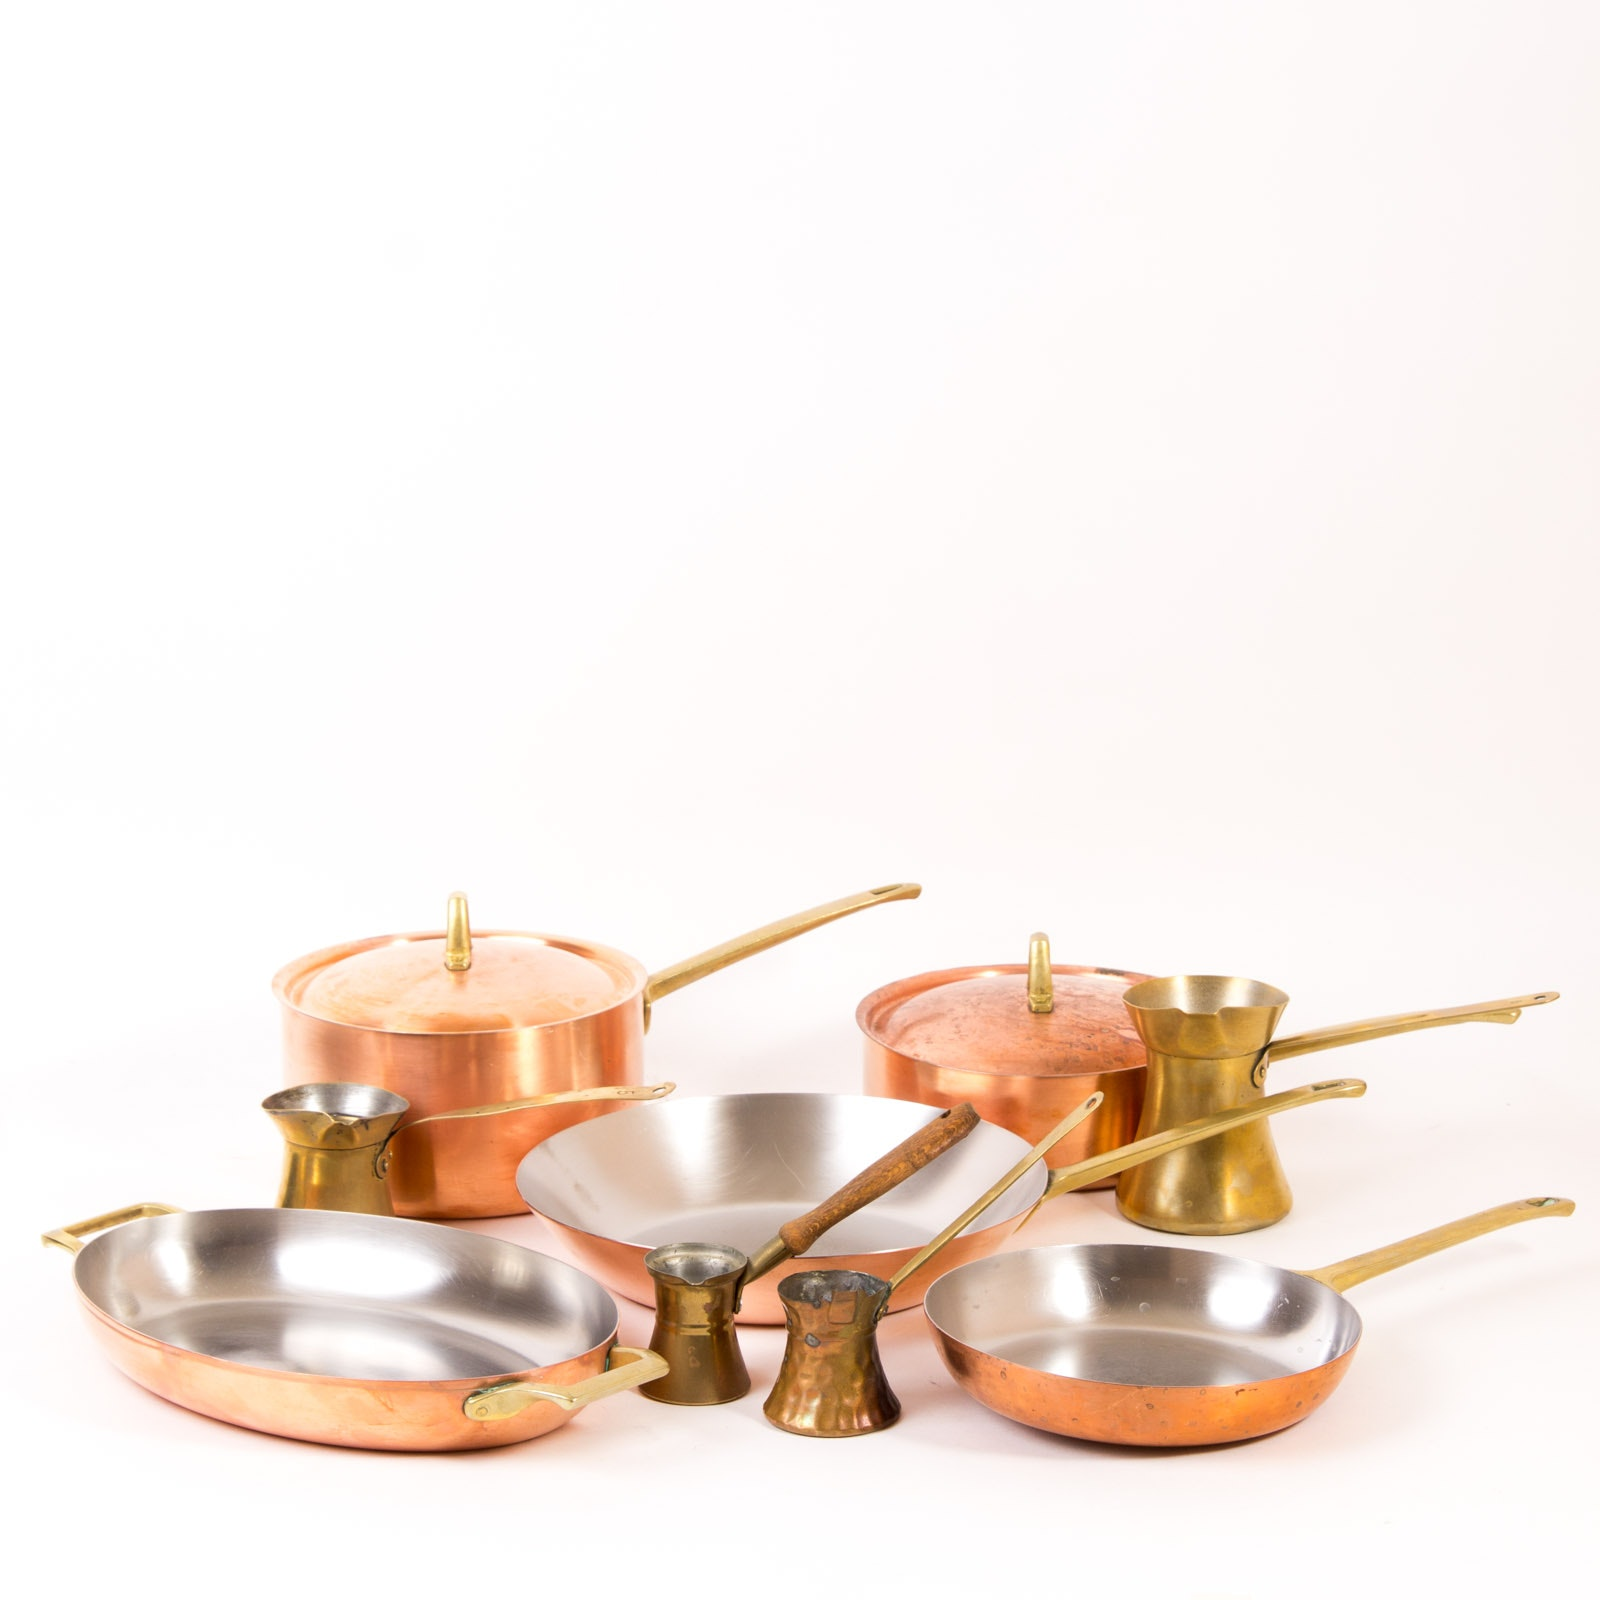 Assortment of Vintage Copper Cookware Including Paul Revere